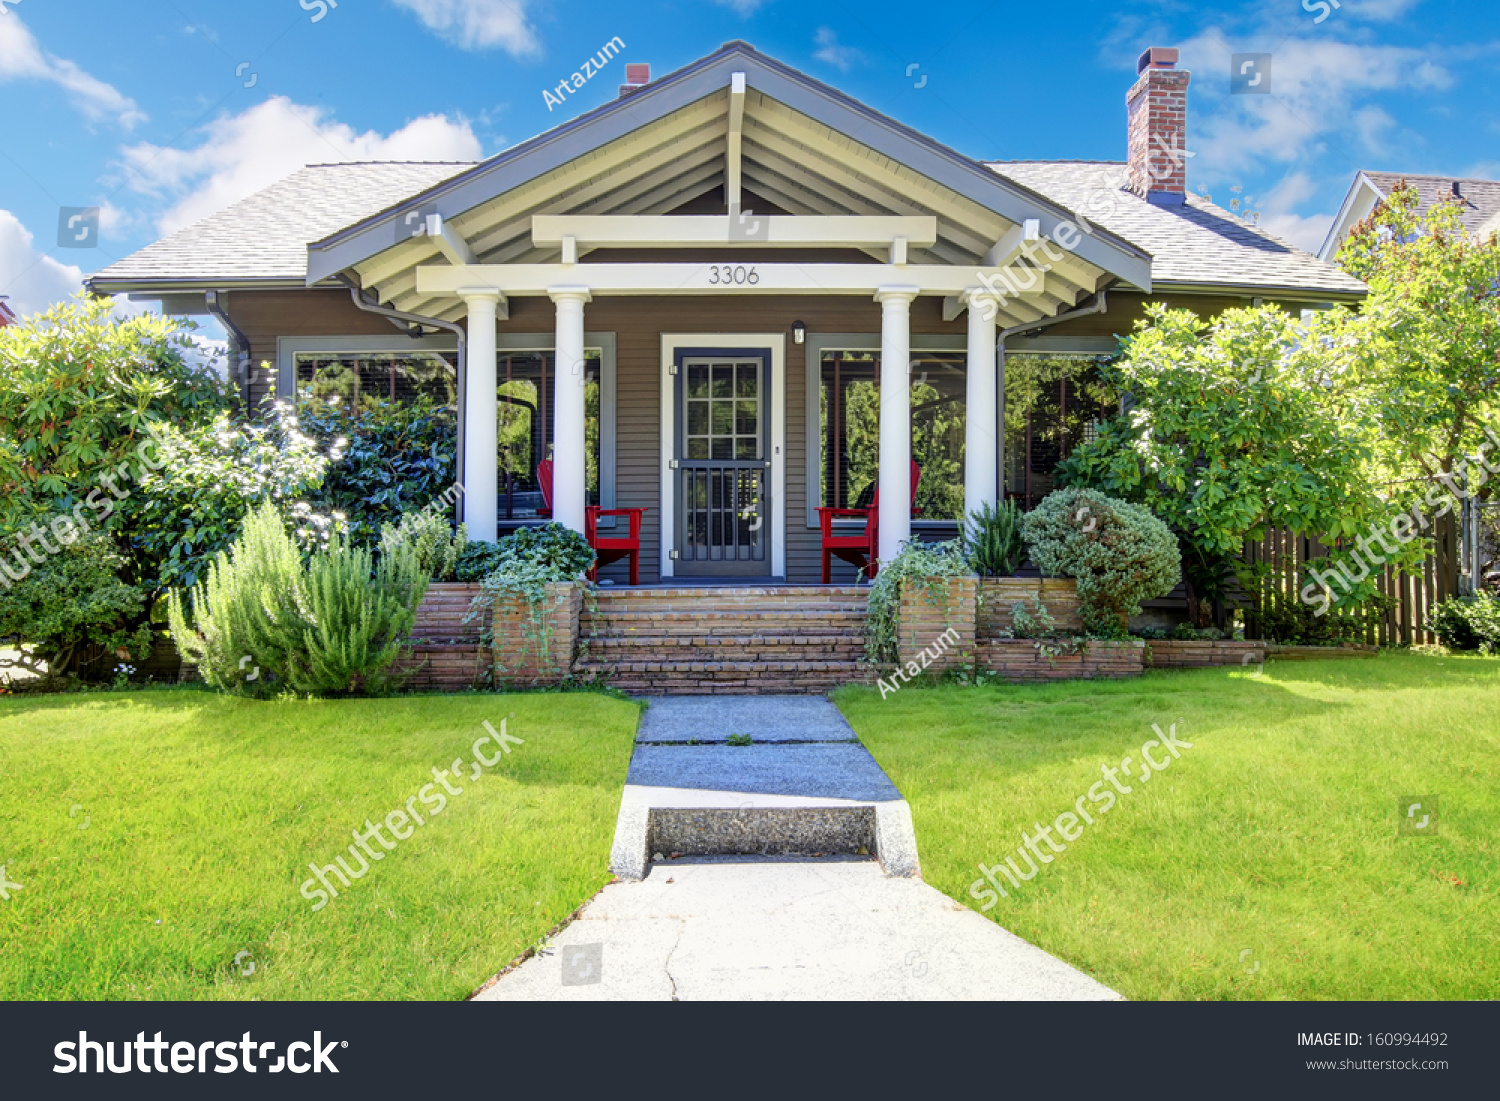 Small craftsman style american old house with front porch for Classic house fronts